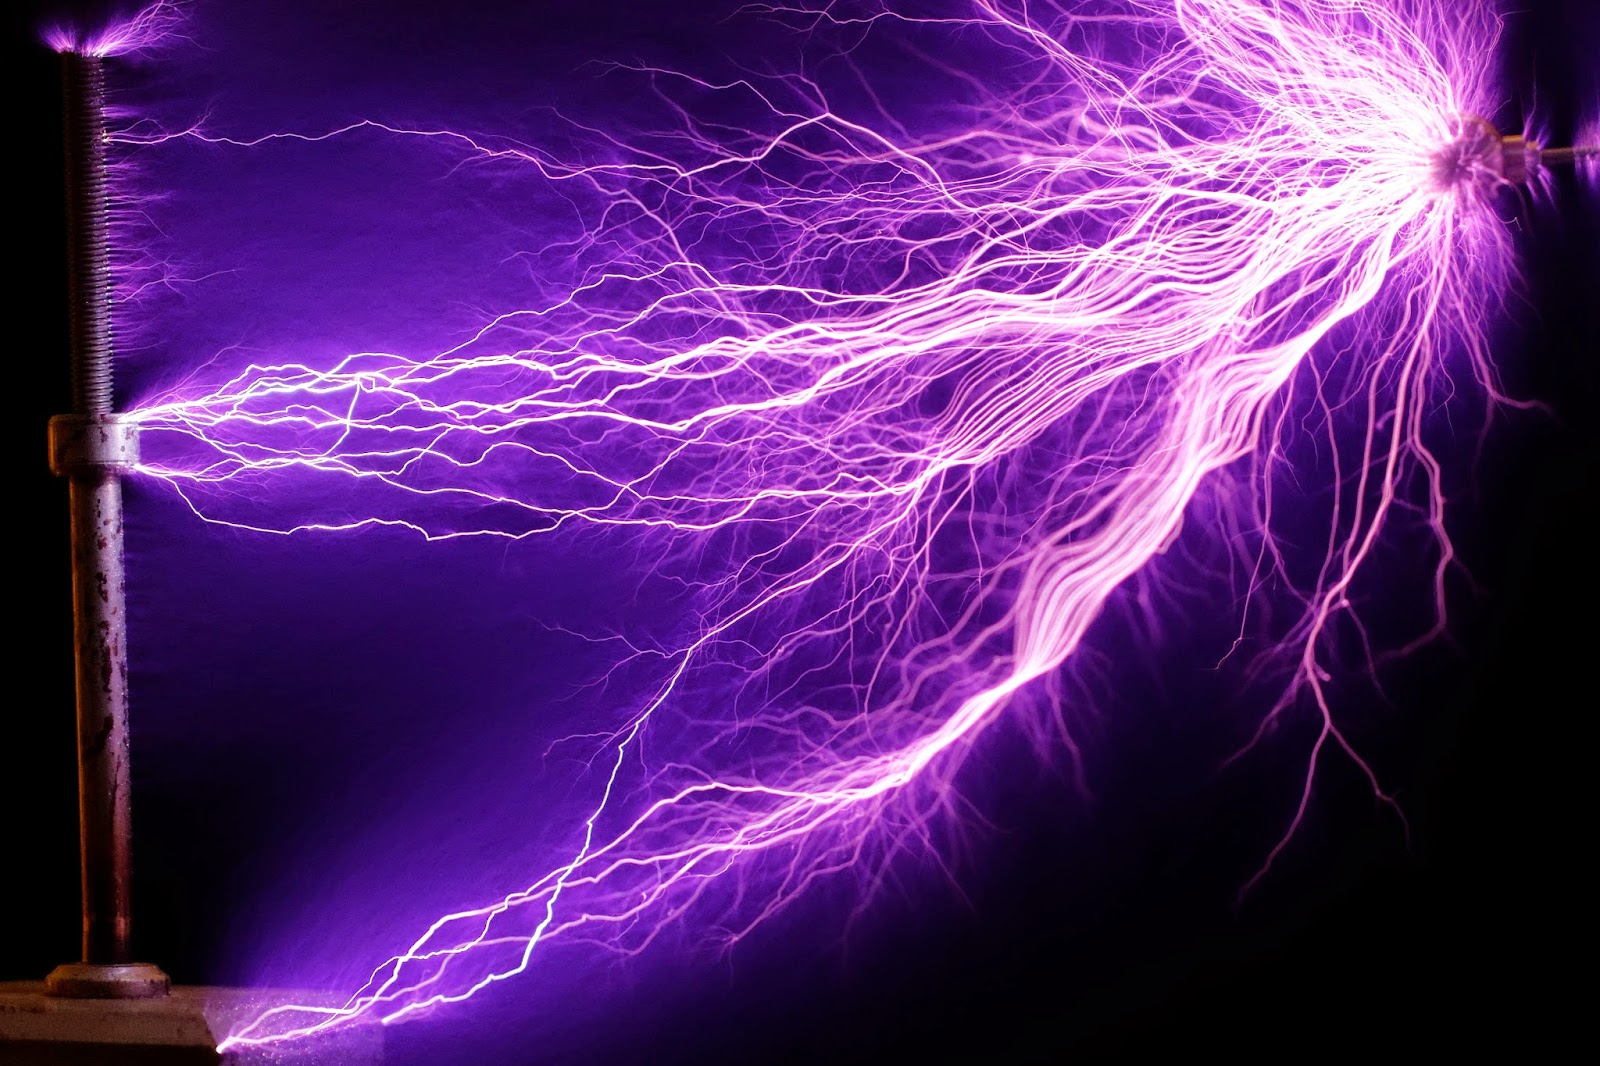 http://aetherforce.com/wp-content/uploads/2014/05/225W_Tesla_coil_-_arcs_cropped.jpg